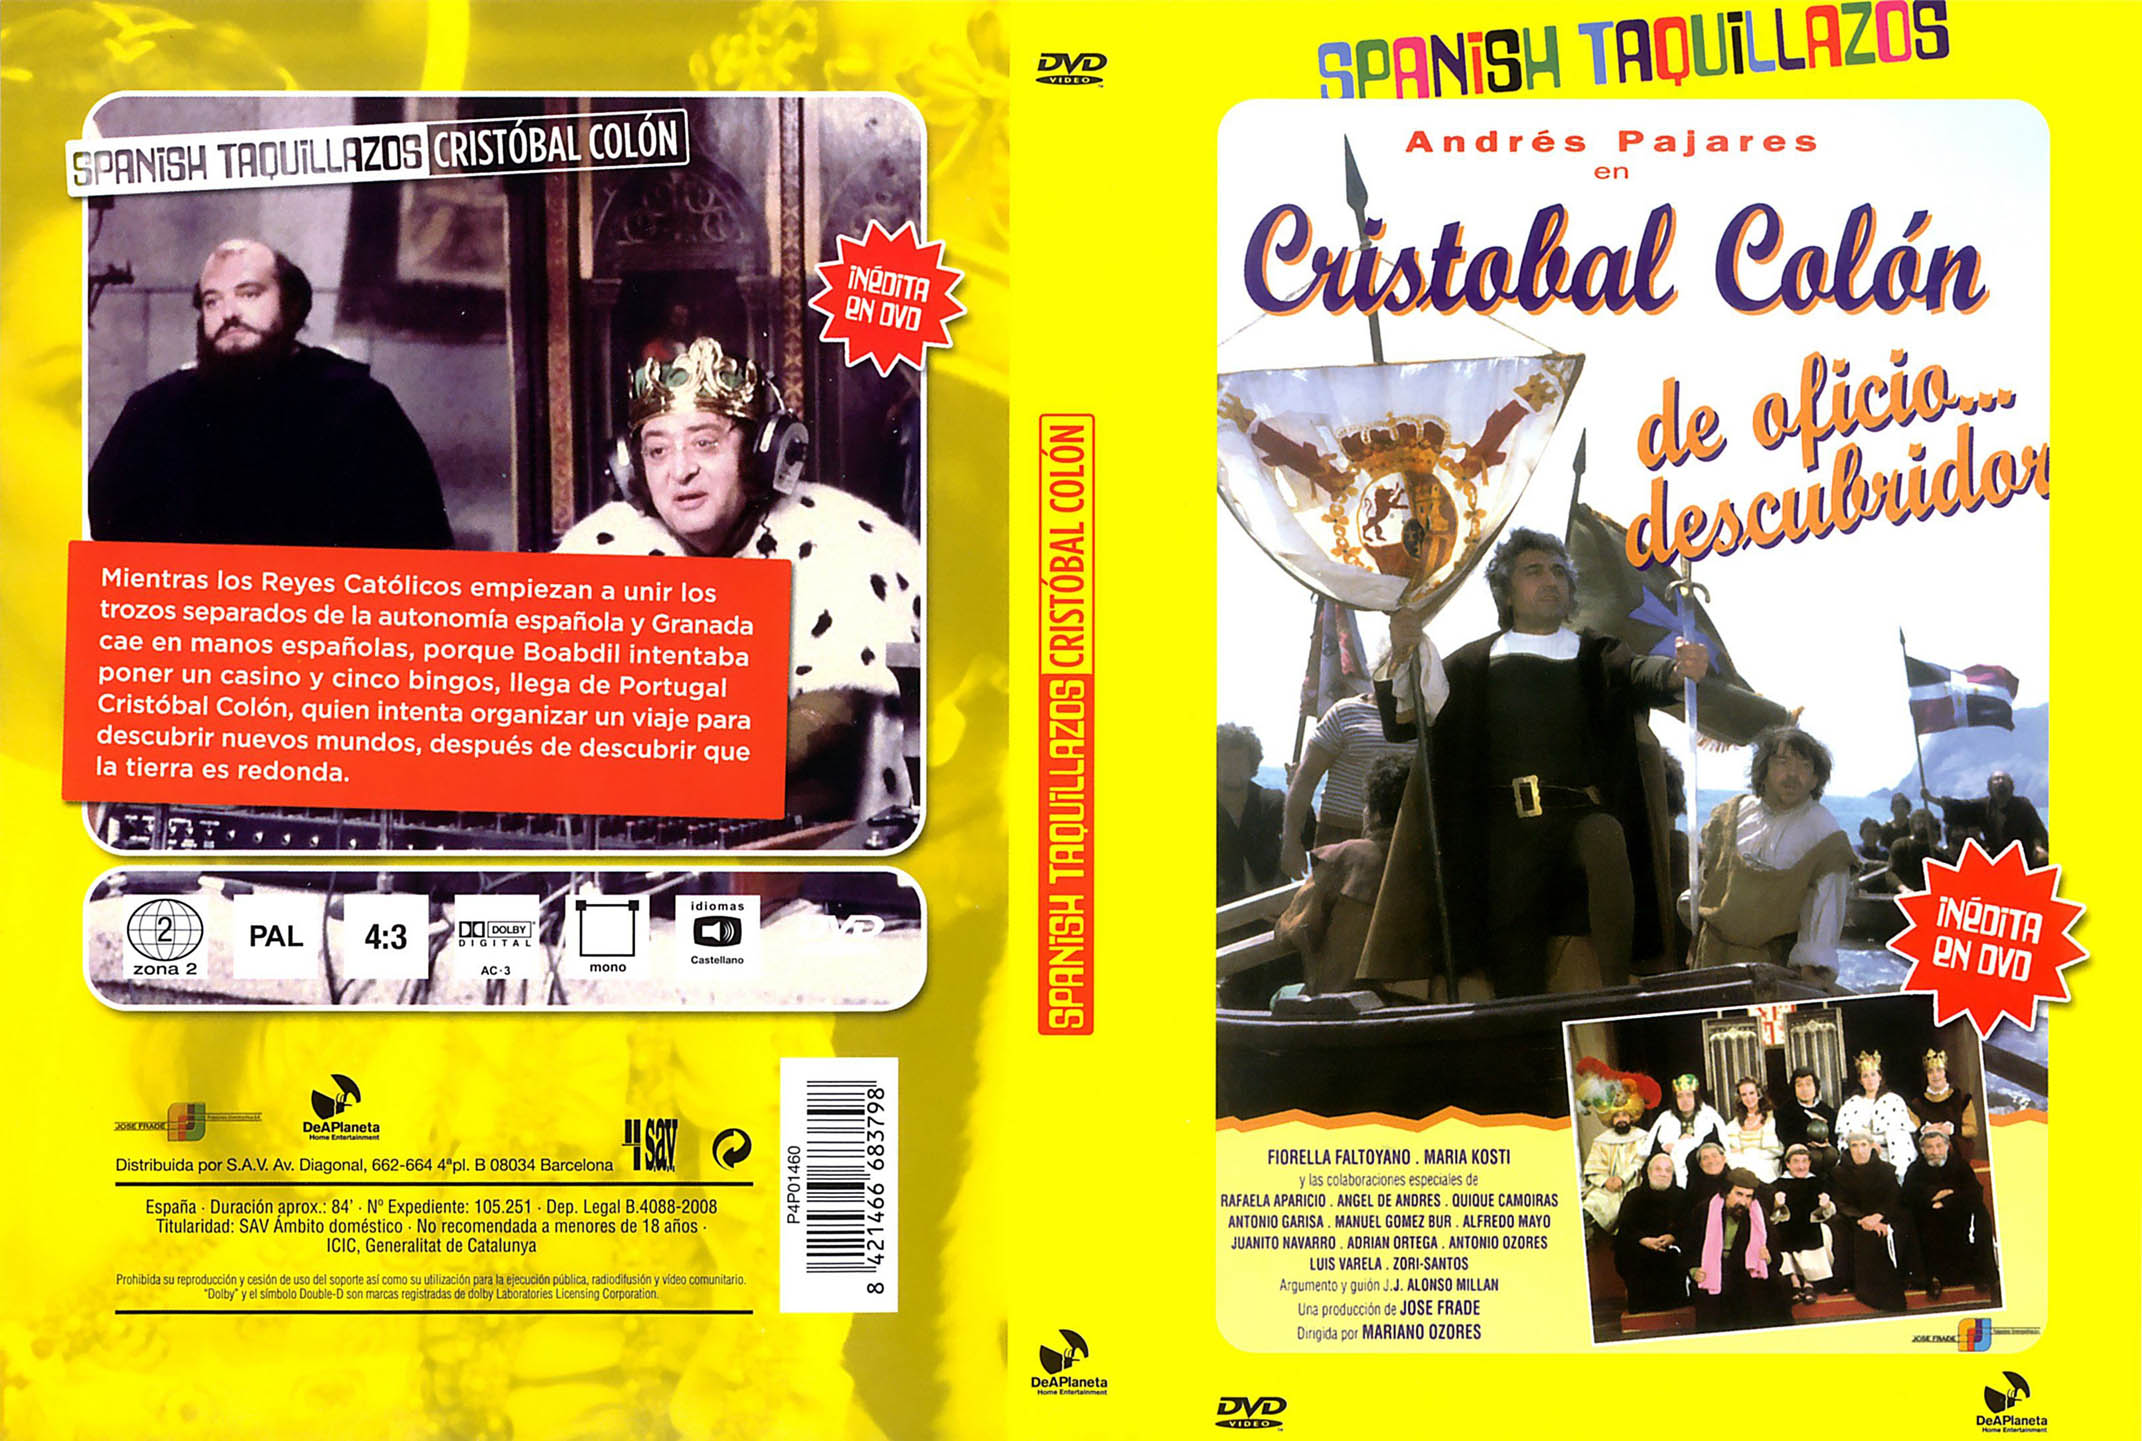 1  3355-cristobal.colon_.de_.oficio....descubridor.1982-  32710820_11176385  Cristobal_Colon-_de_oficio_Descubridor  Cristobal_Colon_De_Oficio_Descubridor-Caratula